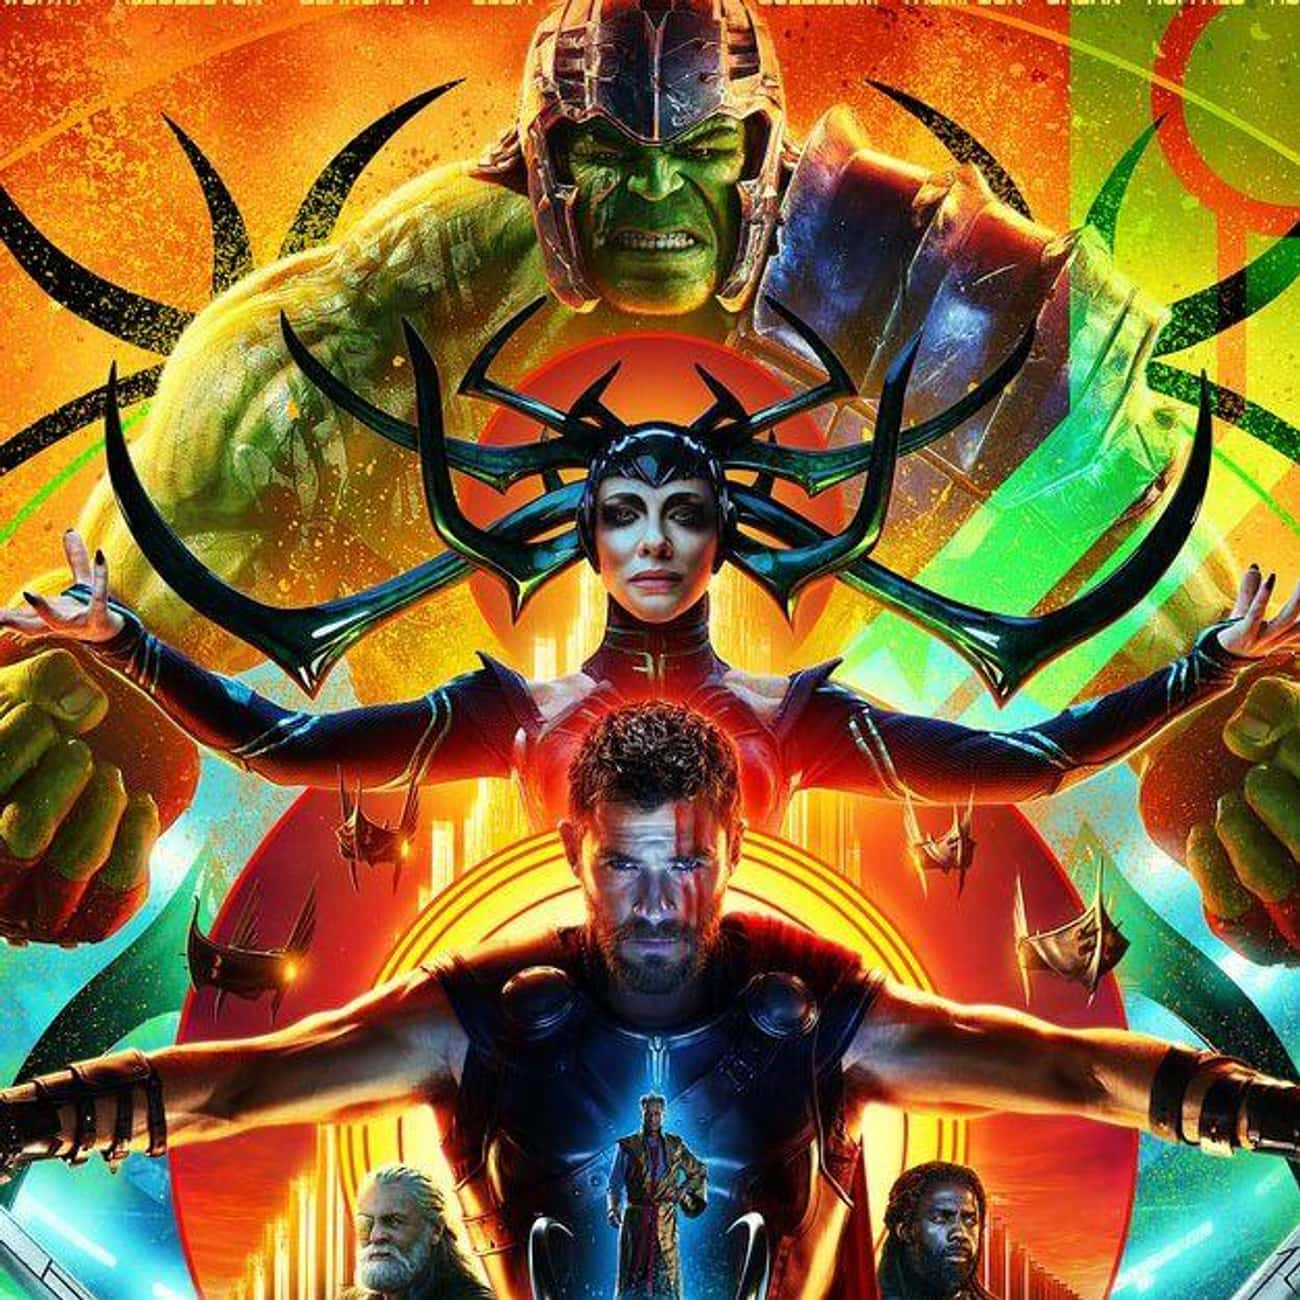 Thor: Ragnarok is listed (or ranked) 1 on the list All the Thor Movies in the MCU (And That Other One), Ranked